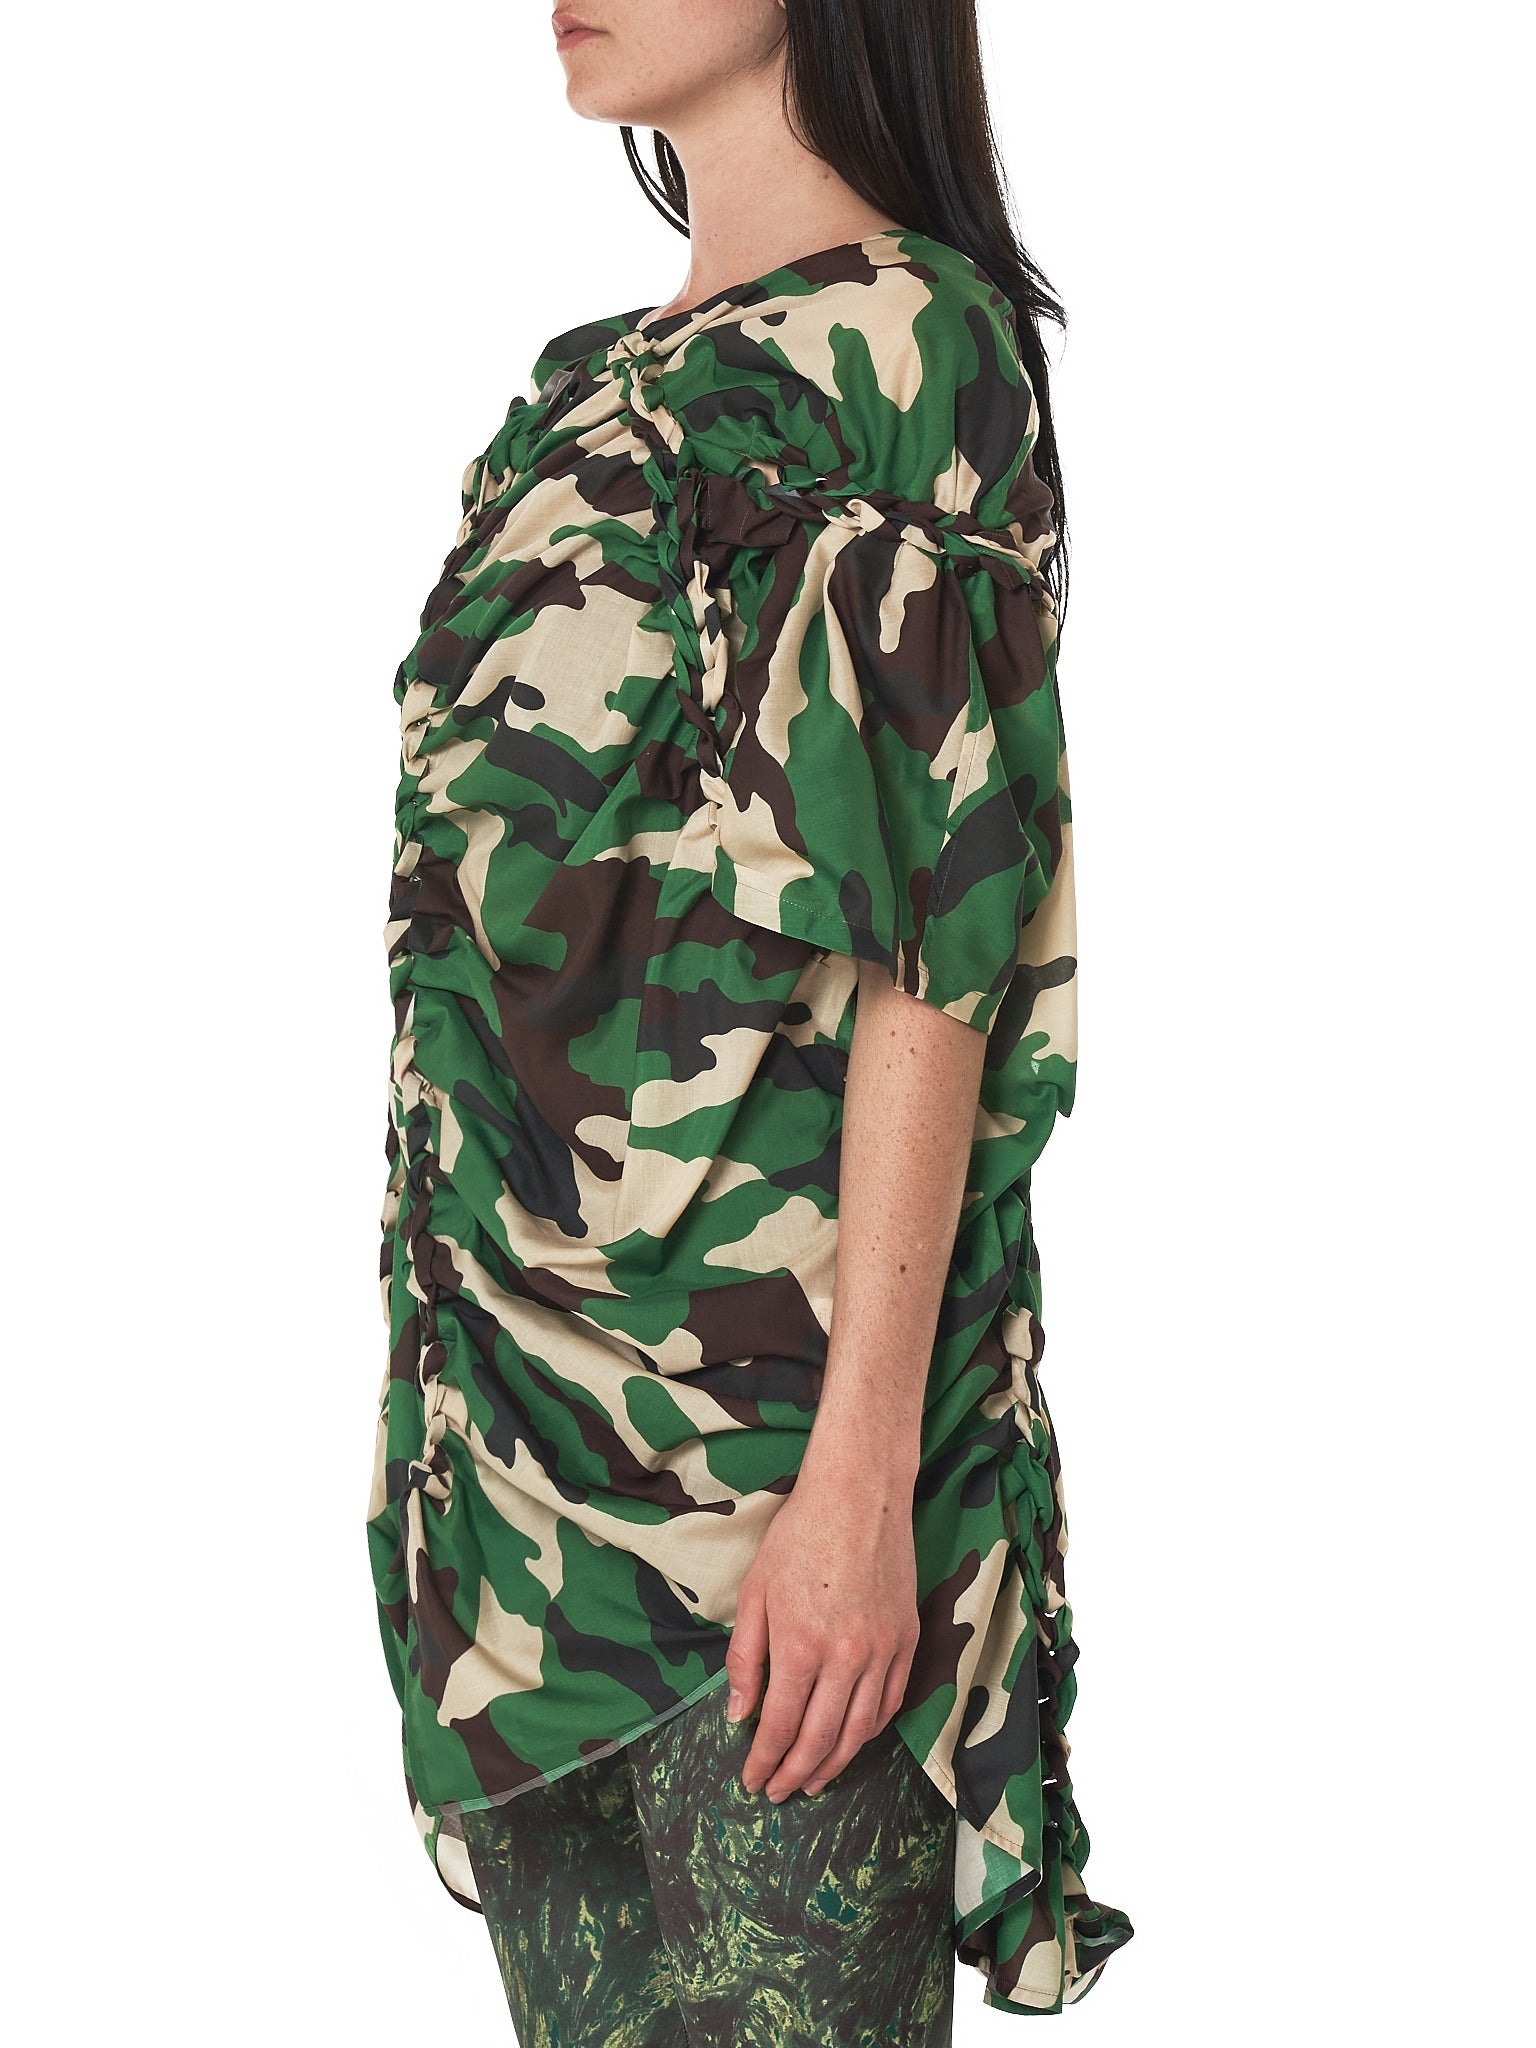 Junya Watanabe Camouflage Dress - Hlorenzo Side